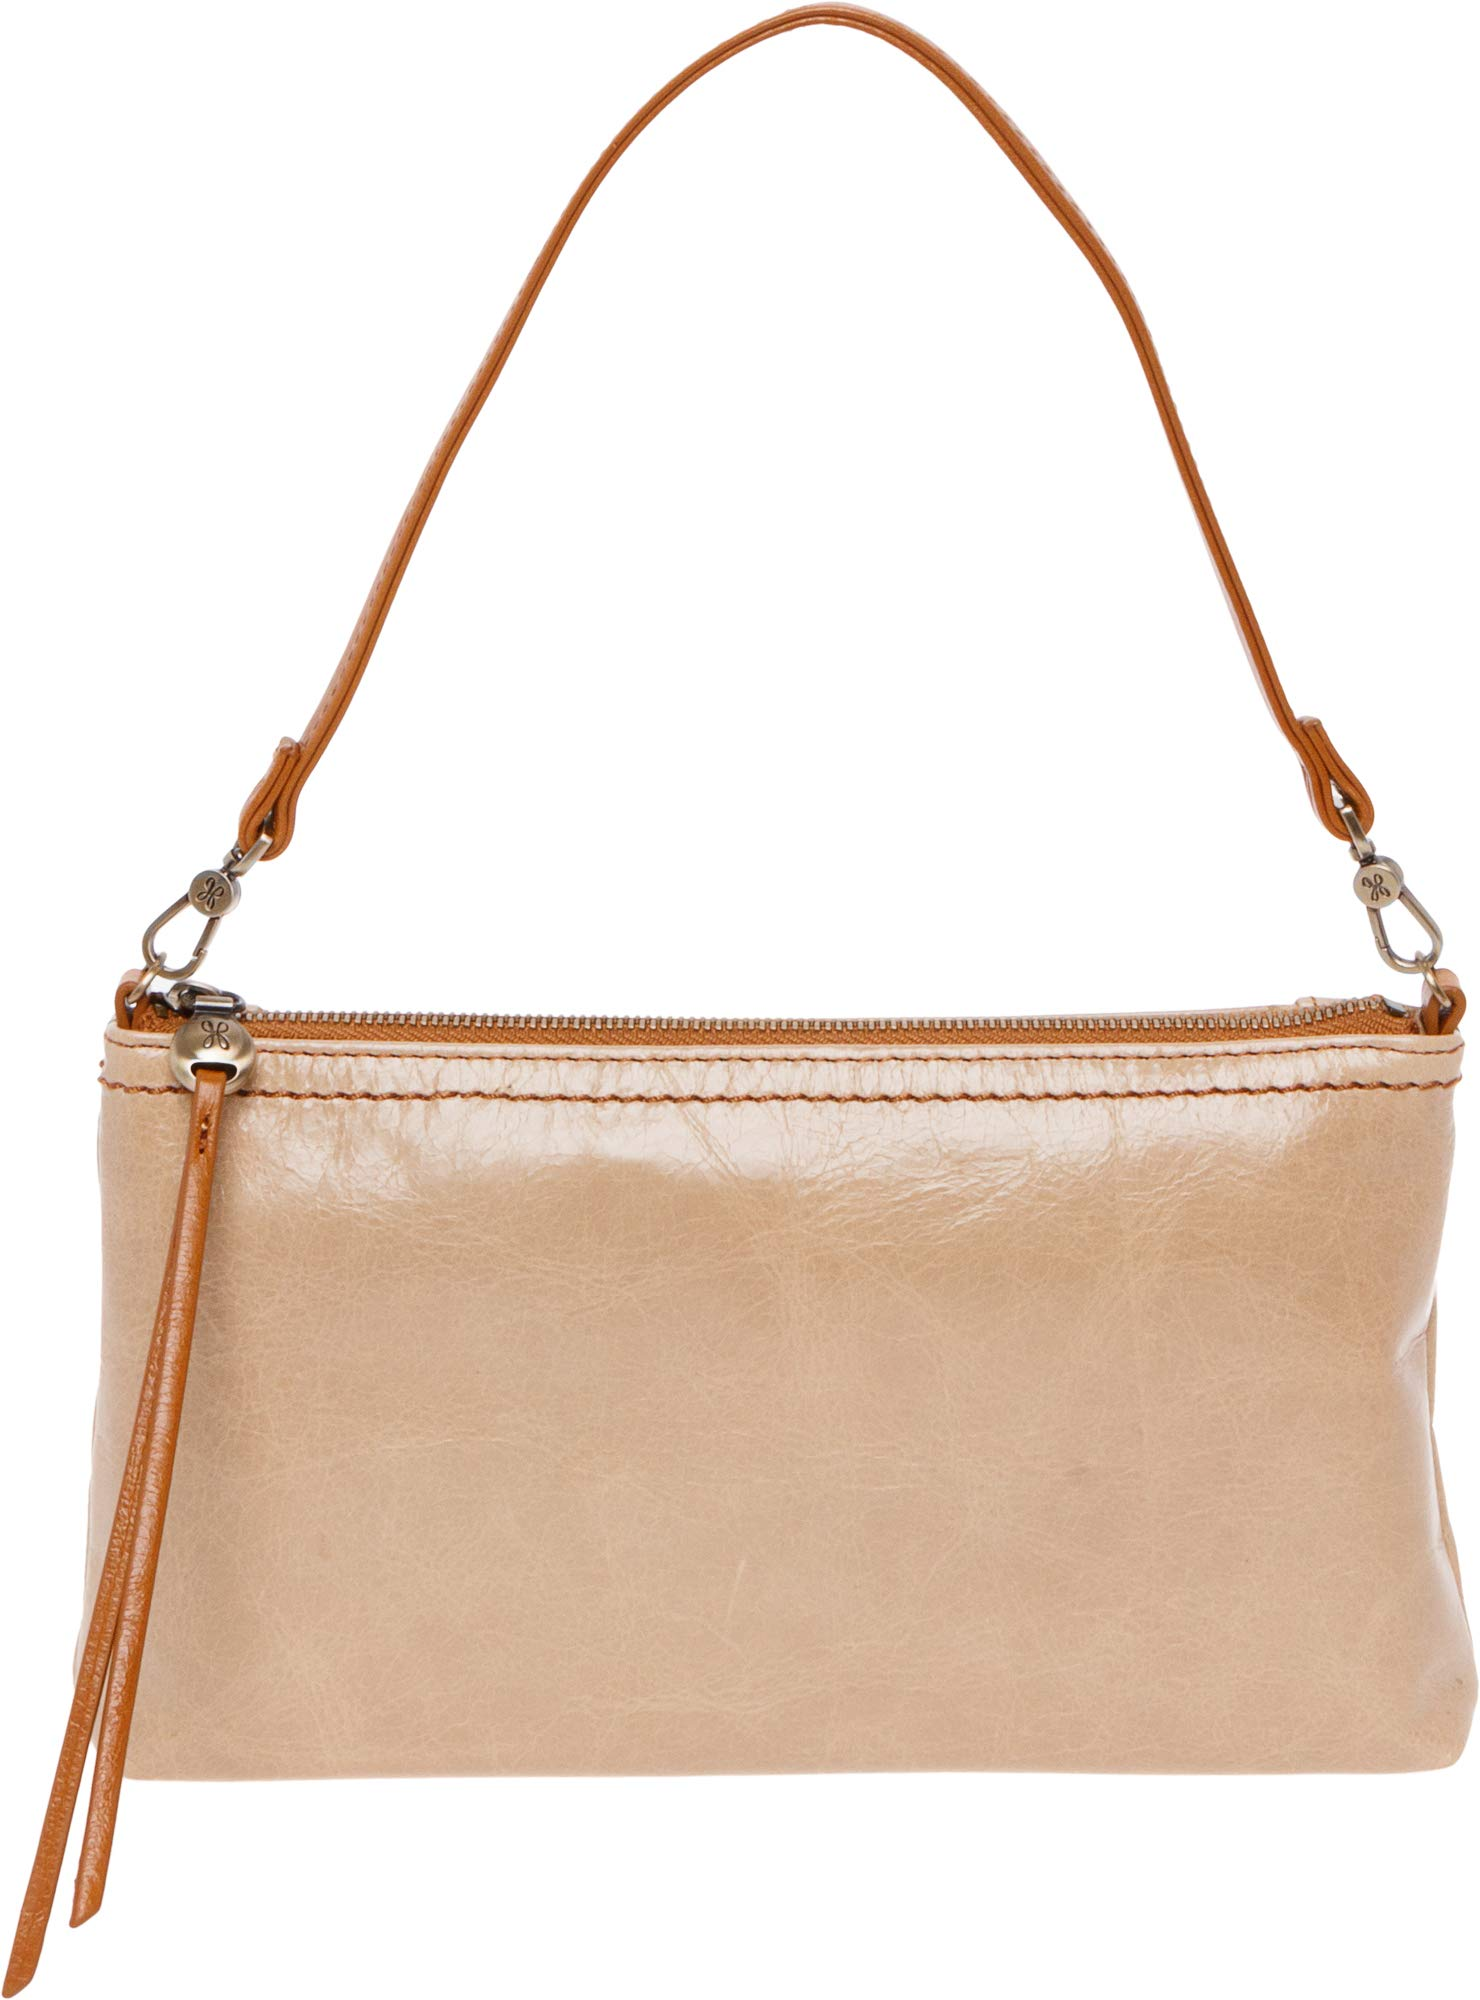 Hobo Womens Leather Vintage Darcy Convertible Crossbody Bag (Parchment)